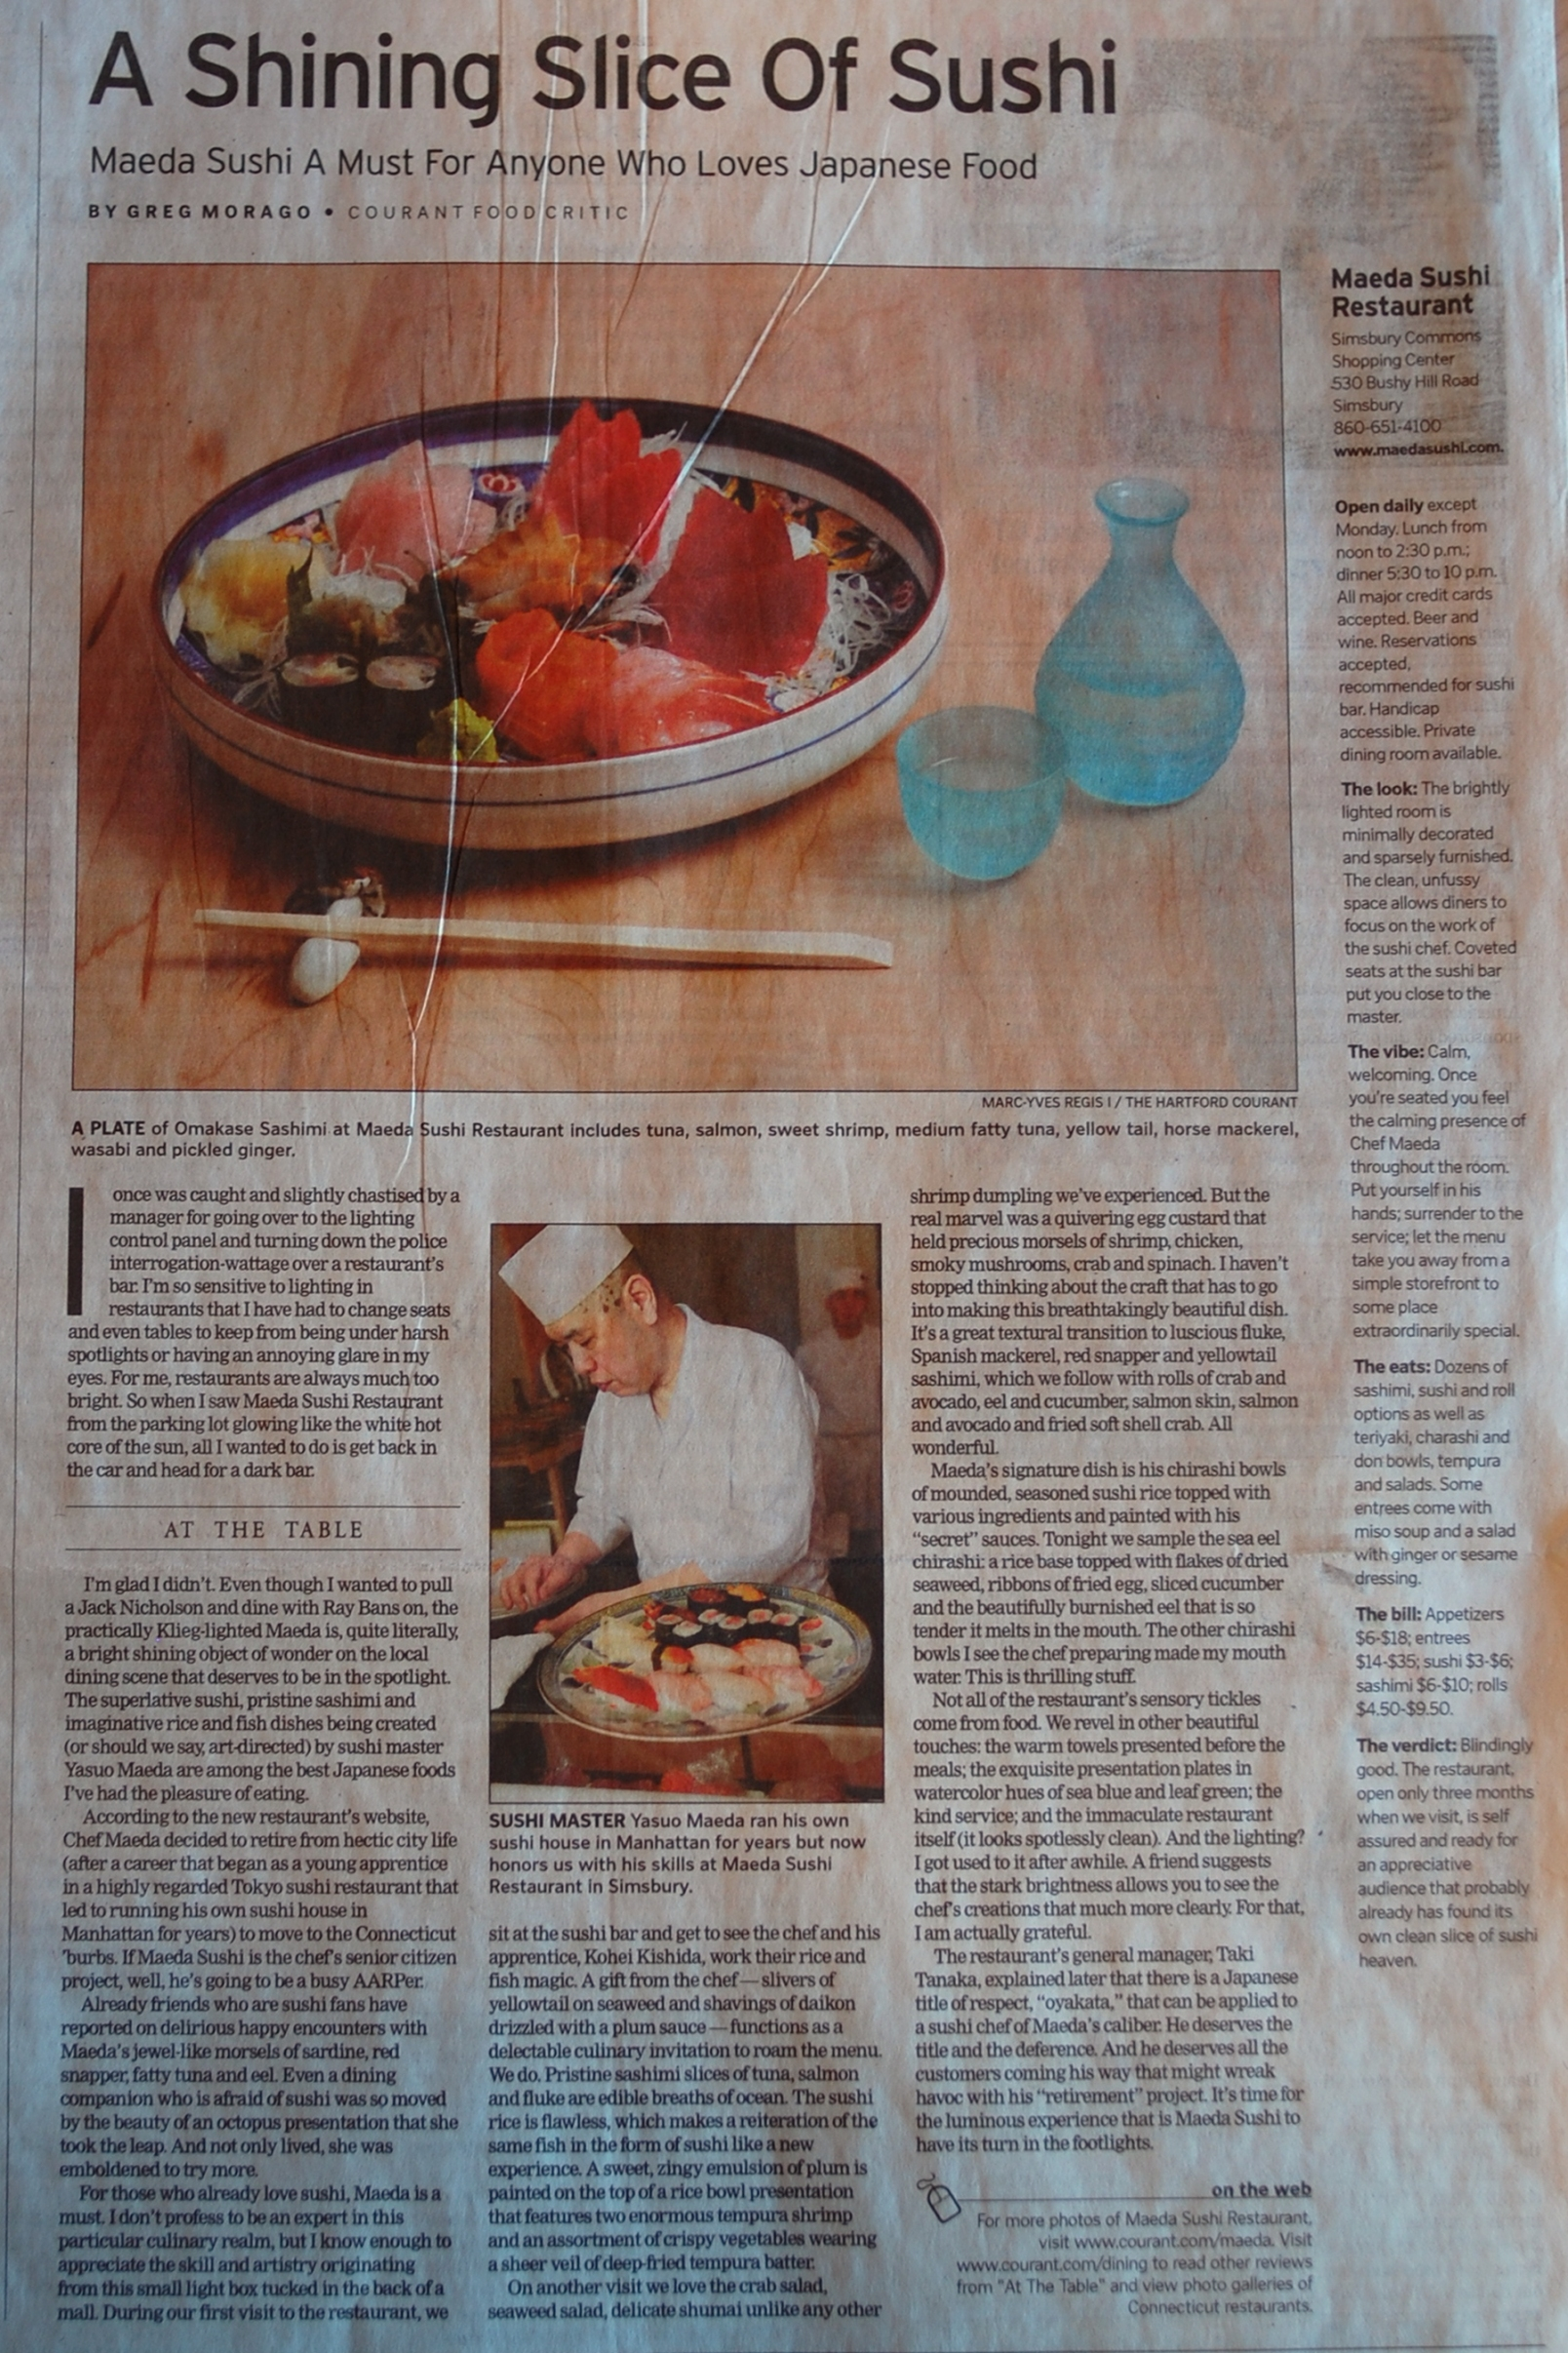 The Hartford Courant review of Maeda SushiRestaurant